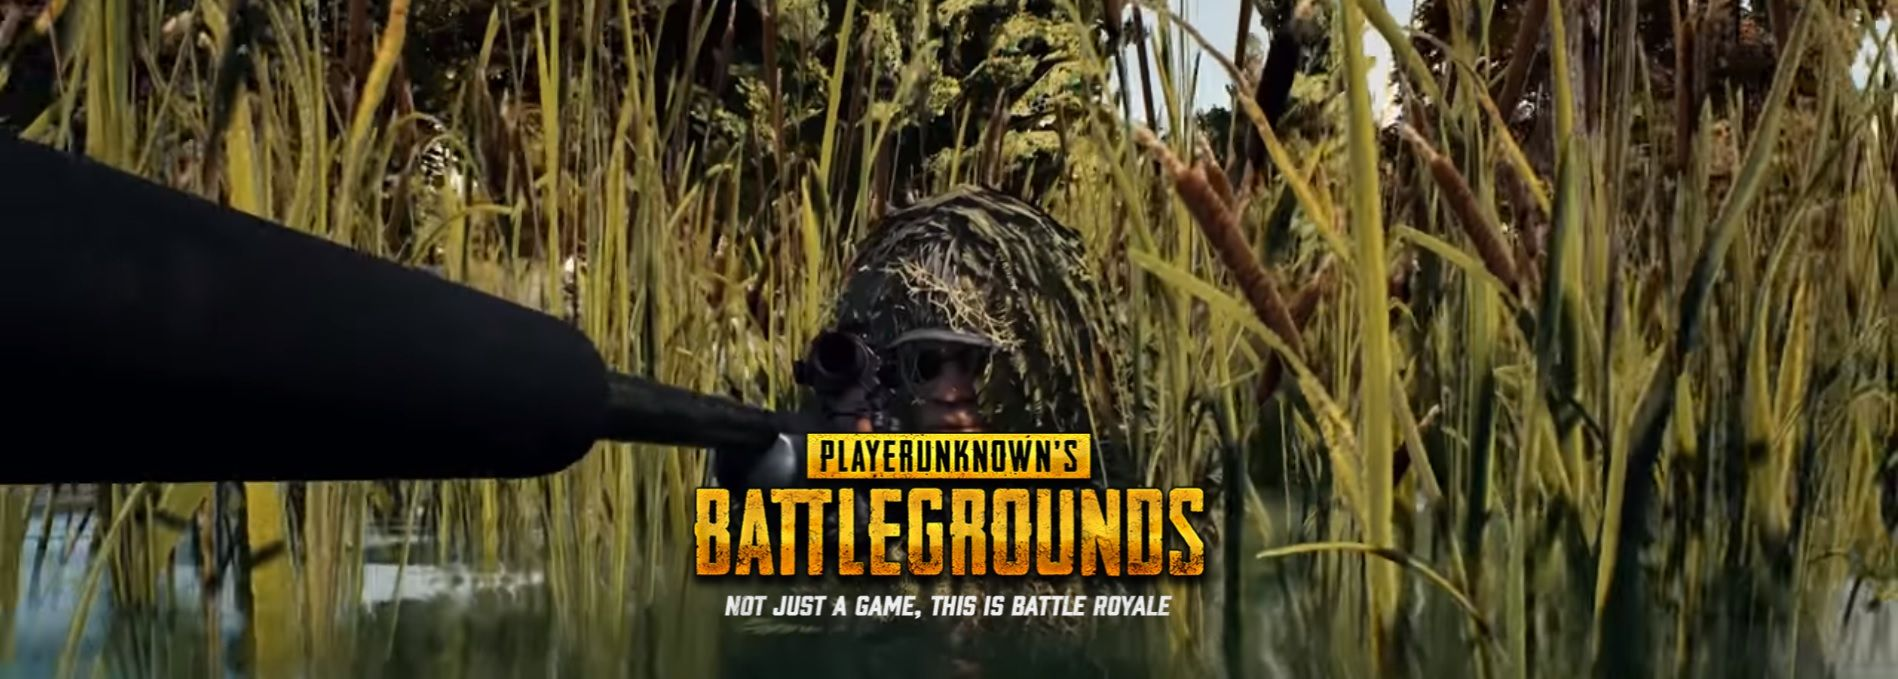 Download 1920x1080 Wallpaper Player Unknown S: Player Unknown's Battlegrounds (PUBG) 4K Camouflage Pubg